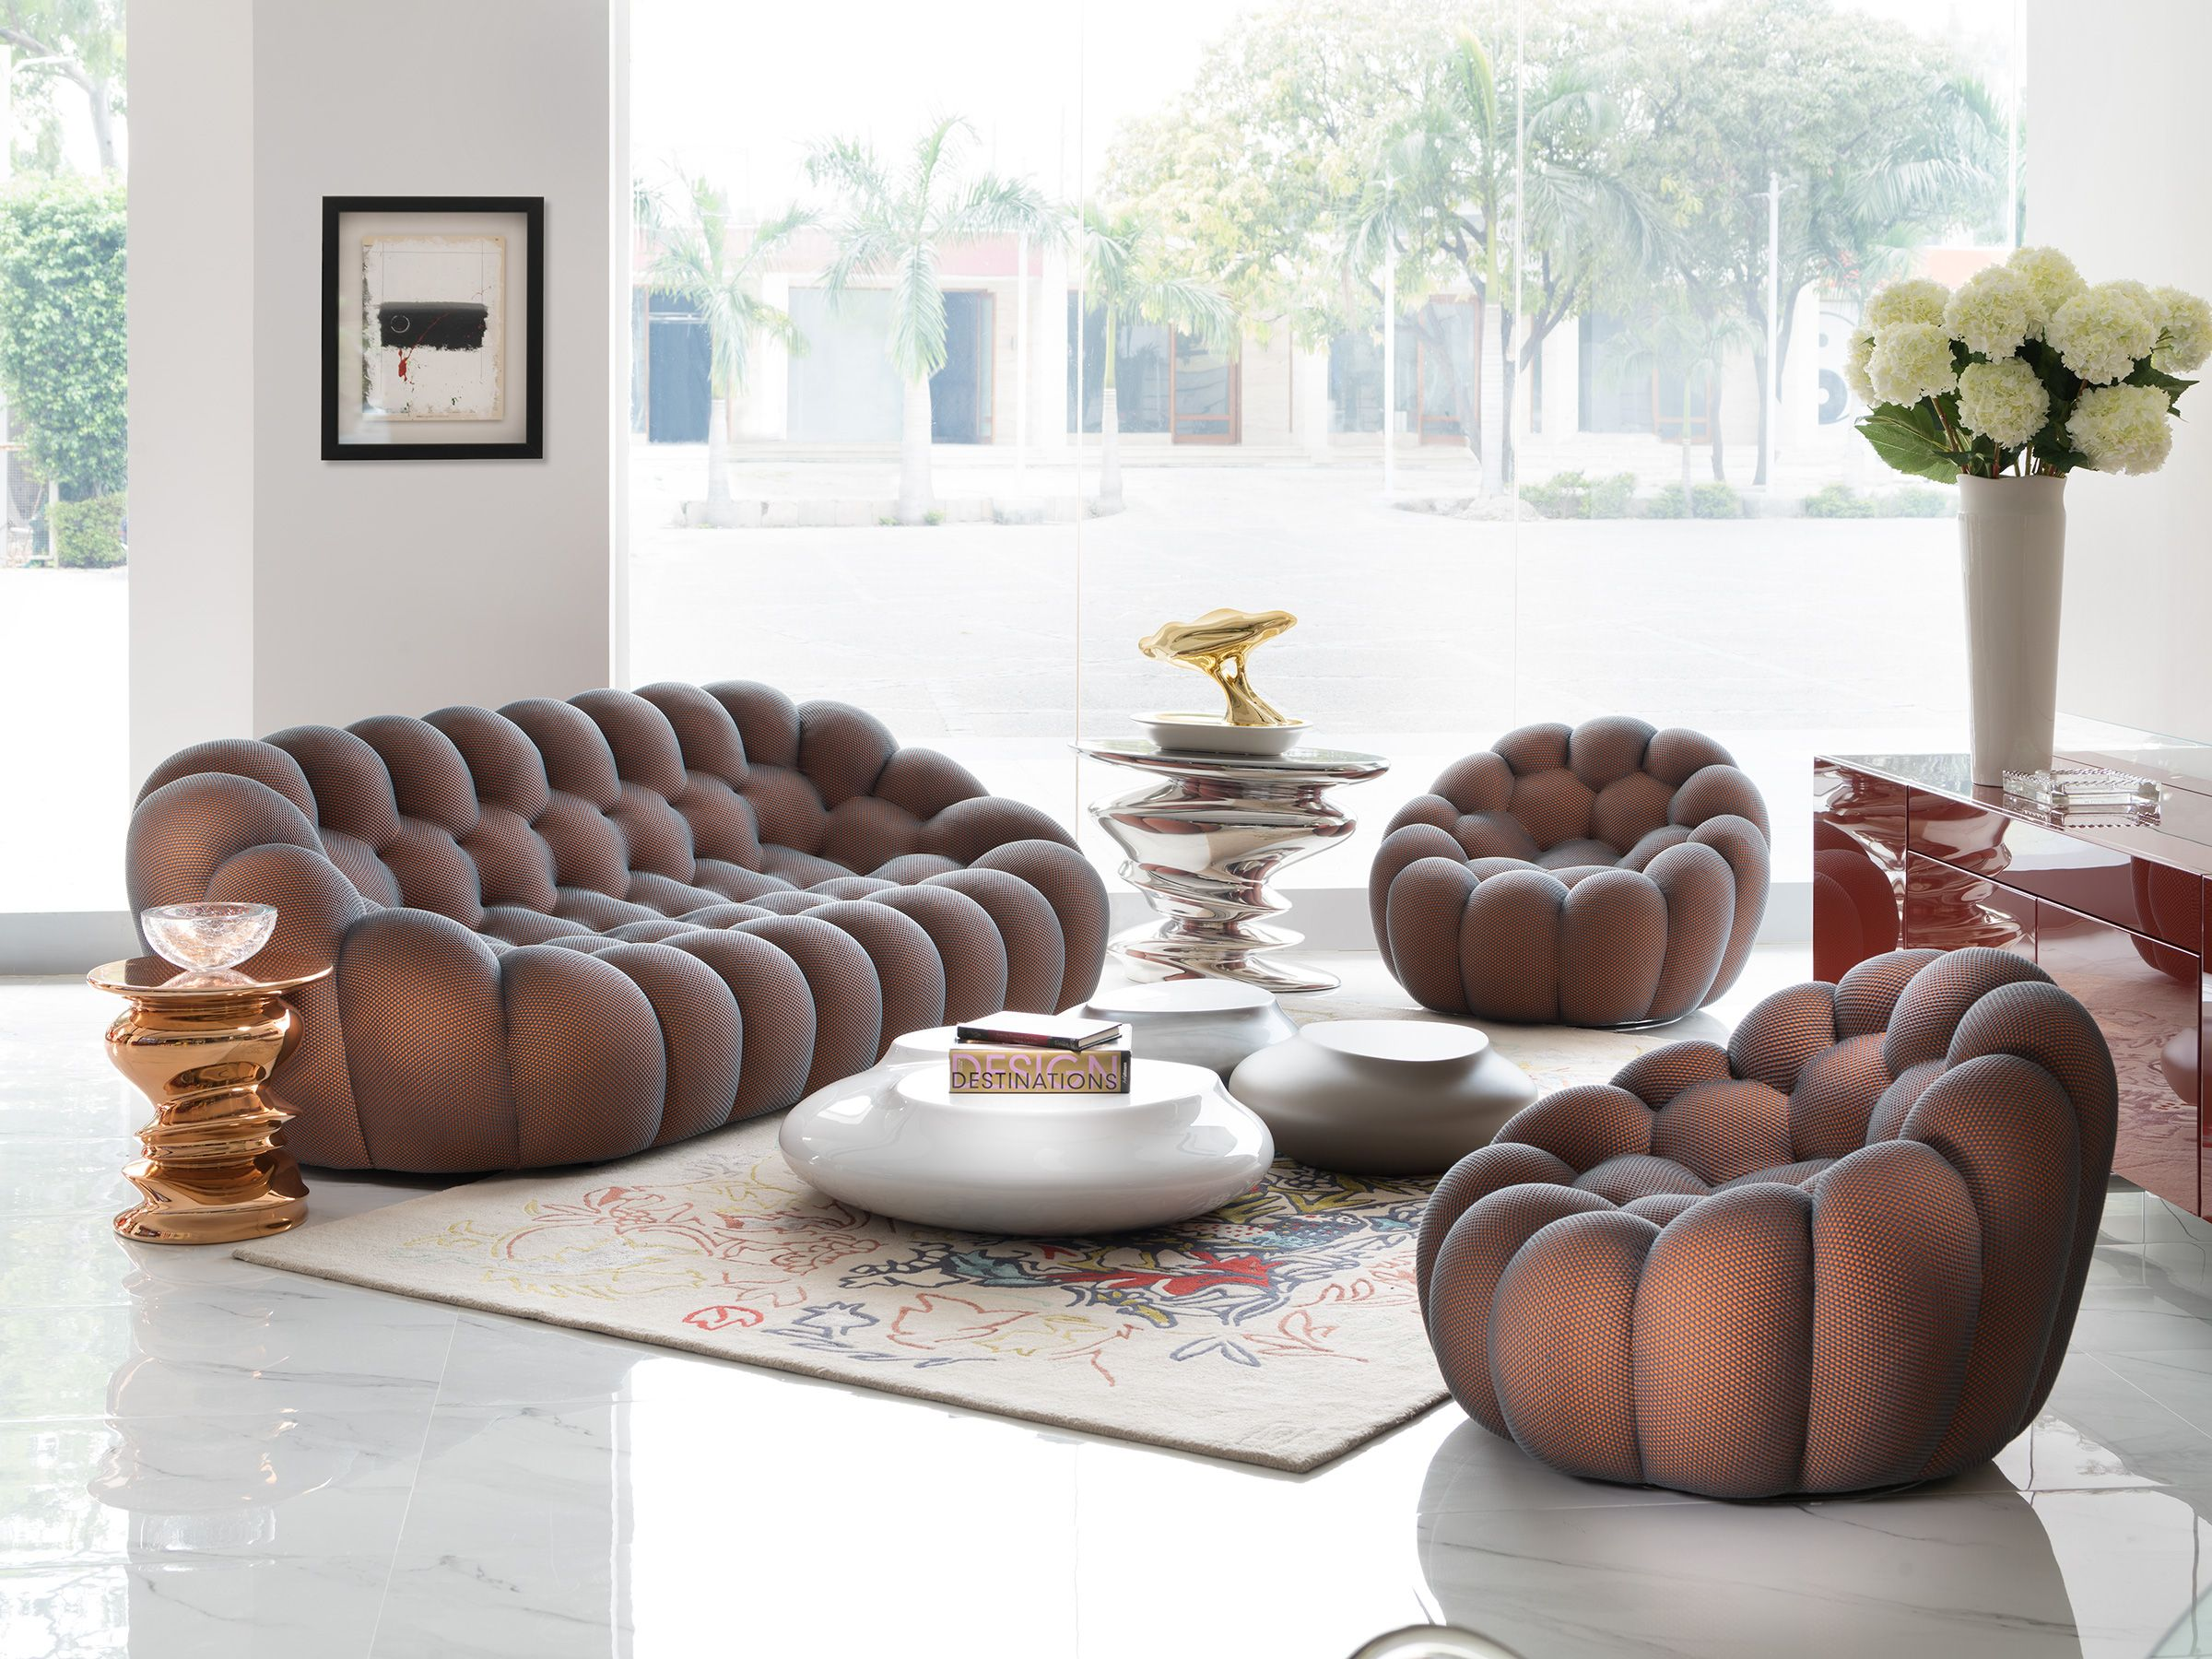 roche bobois new delhi india bubble sofa showroom display pinterest showroom. Black Bedroom Furniture Sets. Home Design Ideas